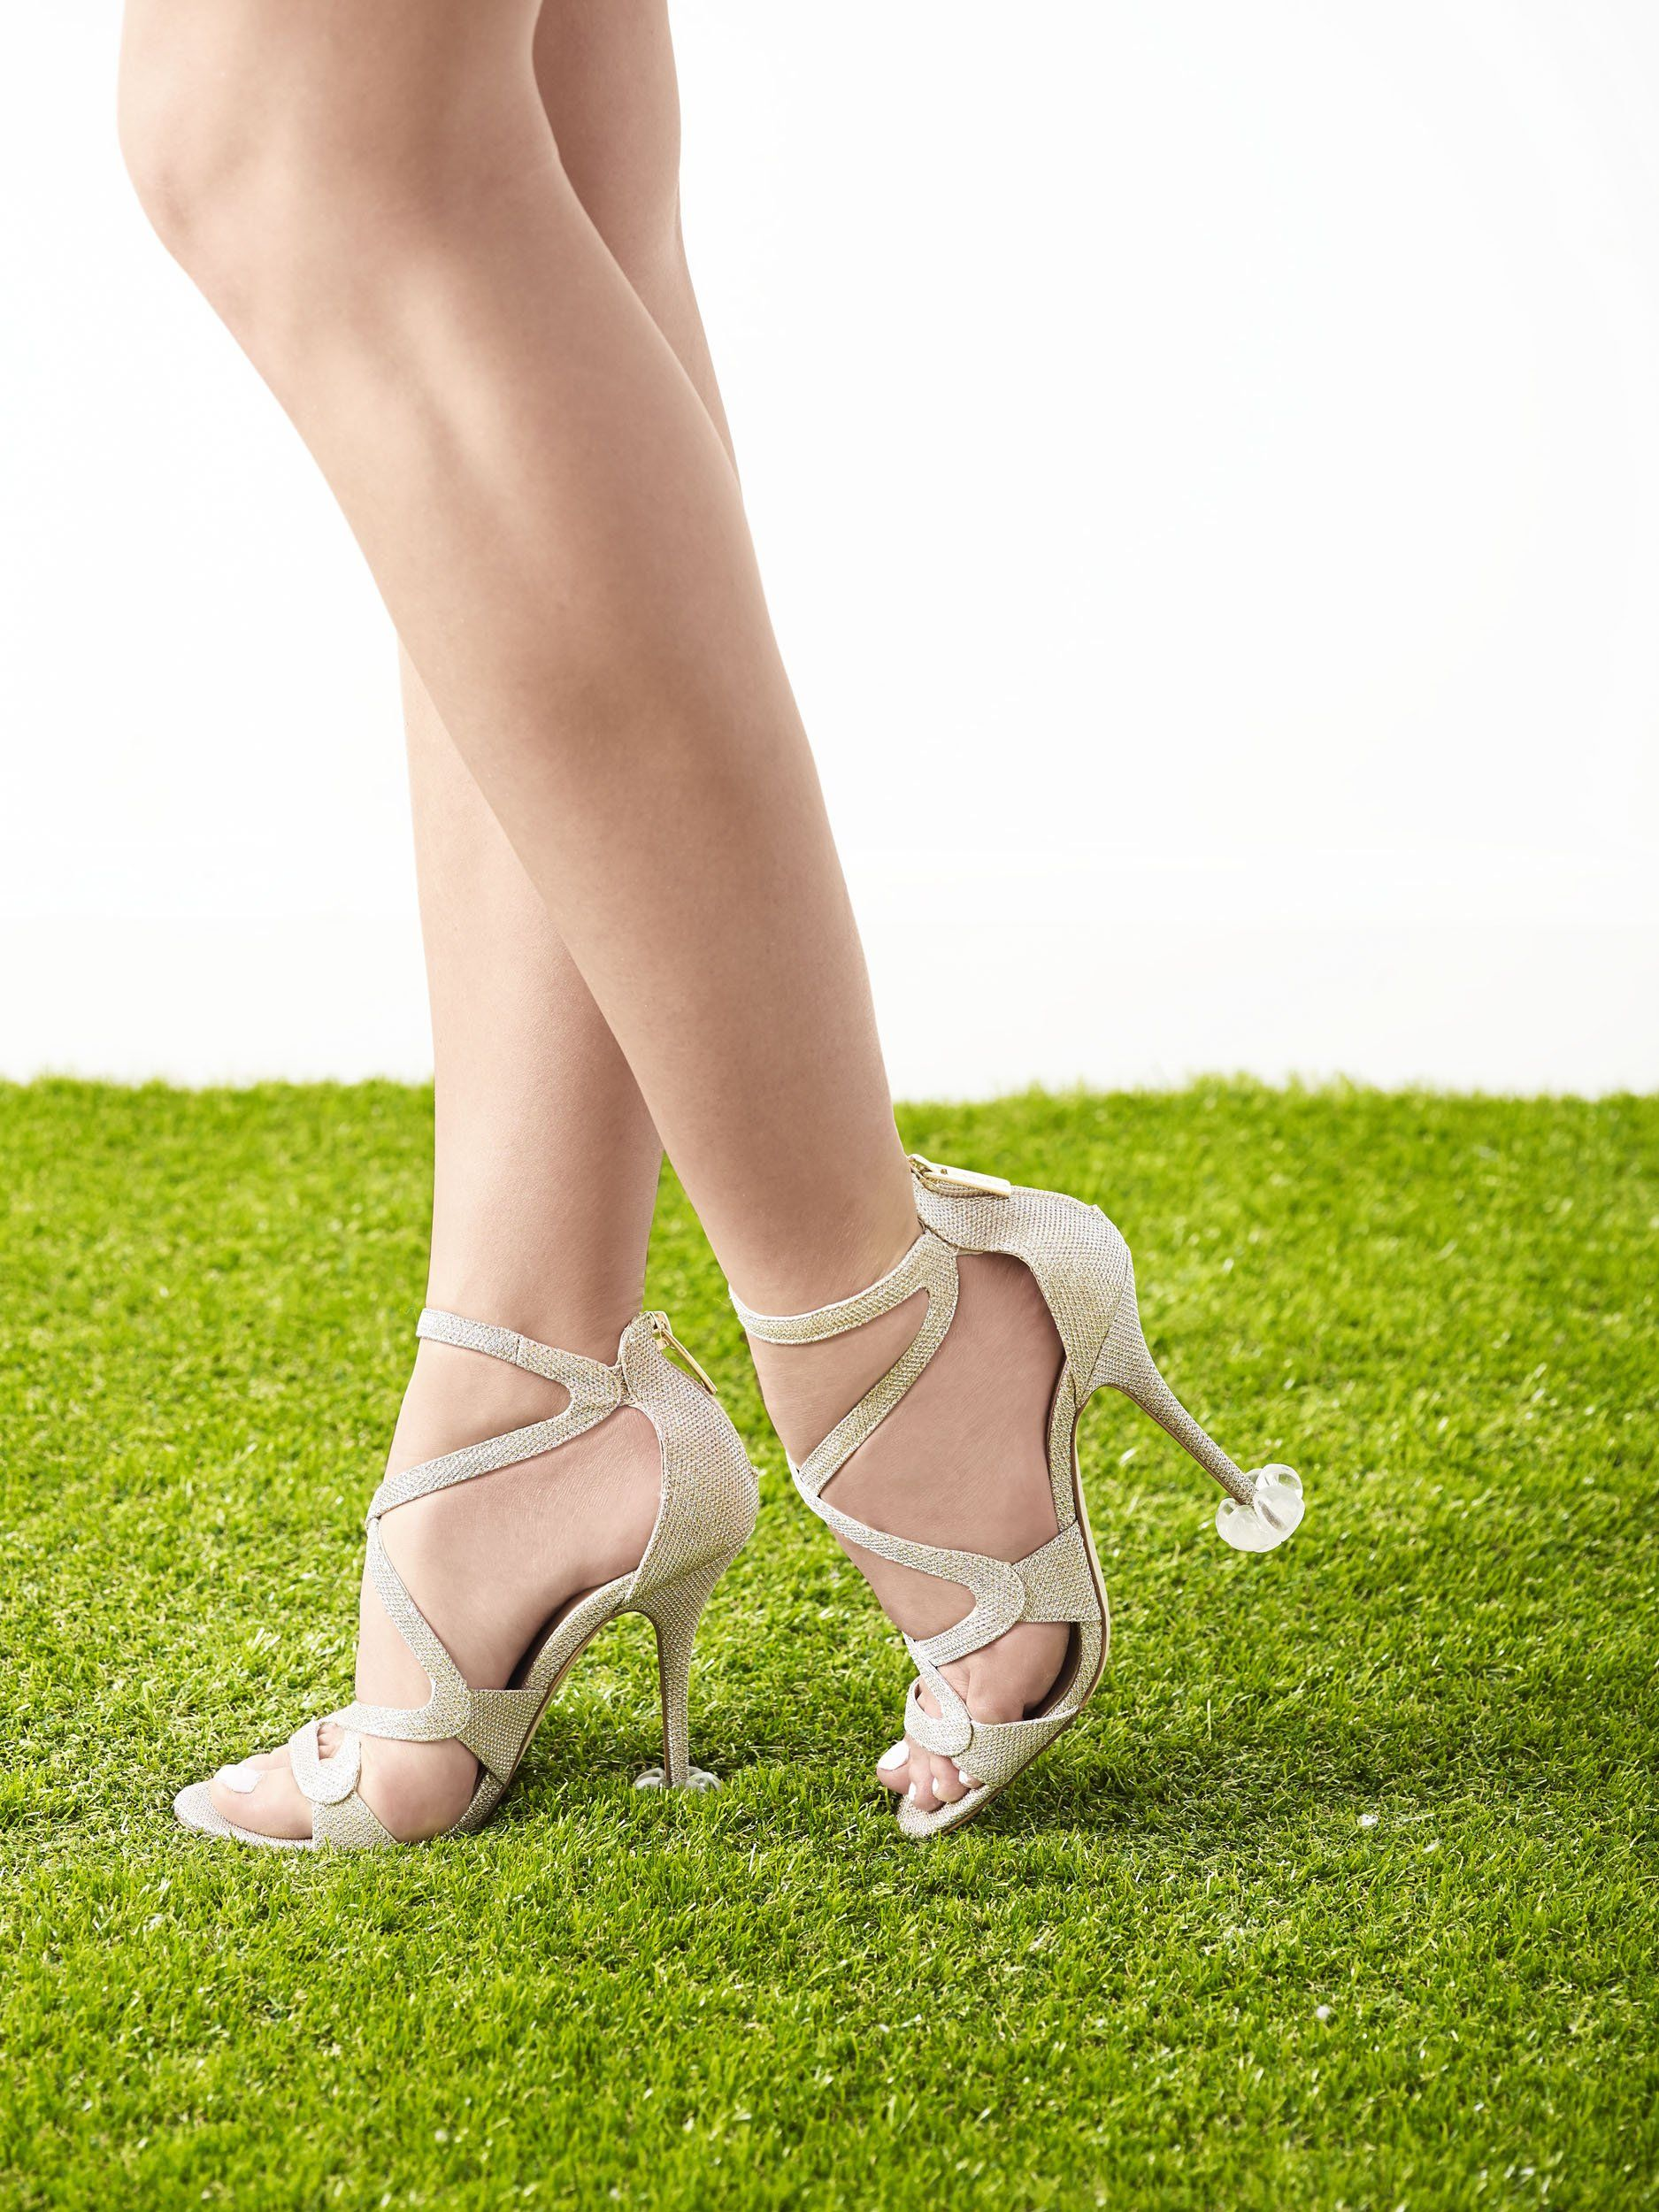 6250581dc4f Crystal Clear High Heel Protectors - Stops Your Heels Sinking in Grass -  Free Carry Pouch